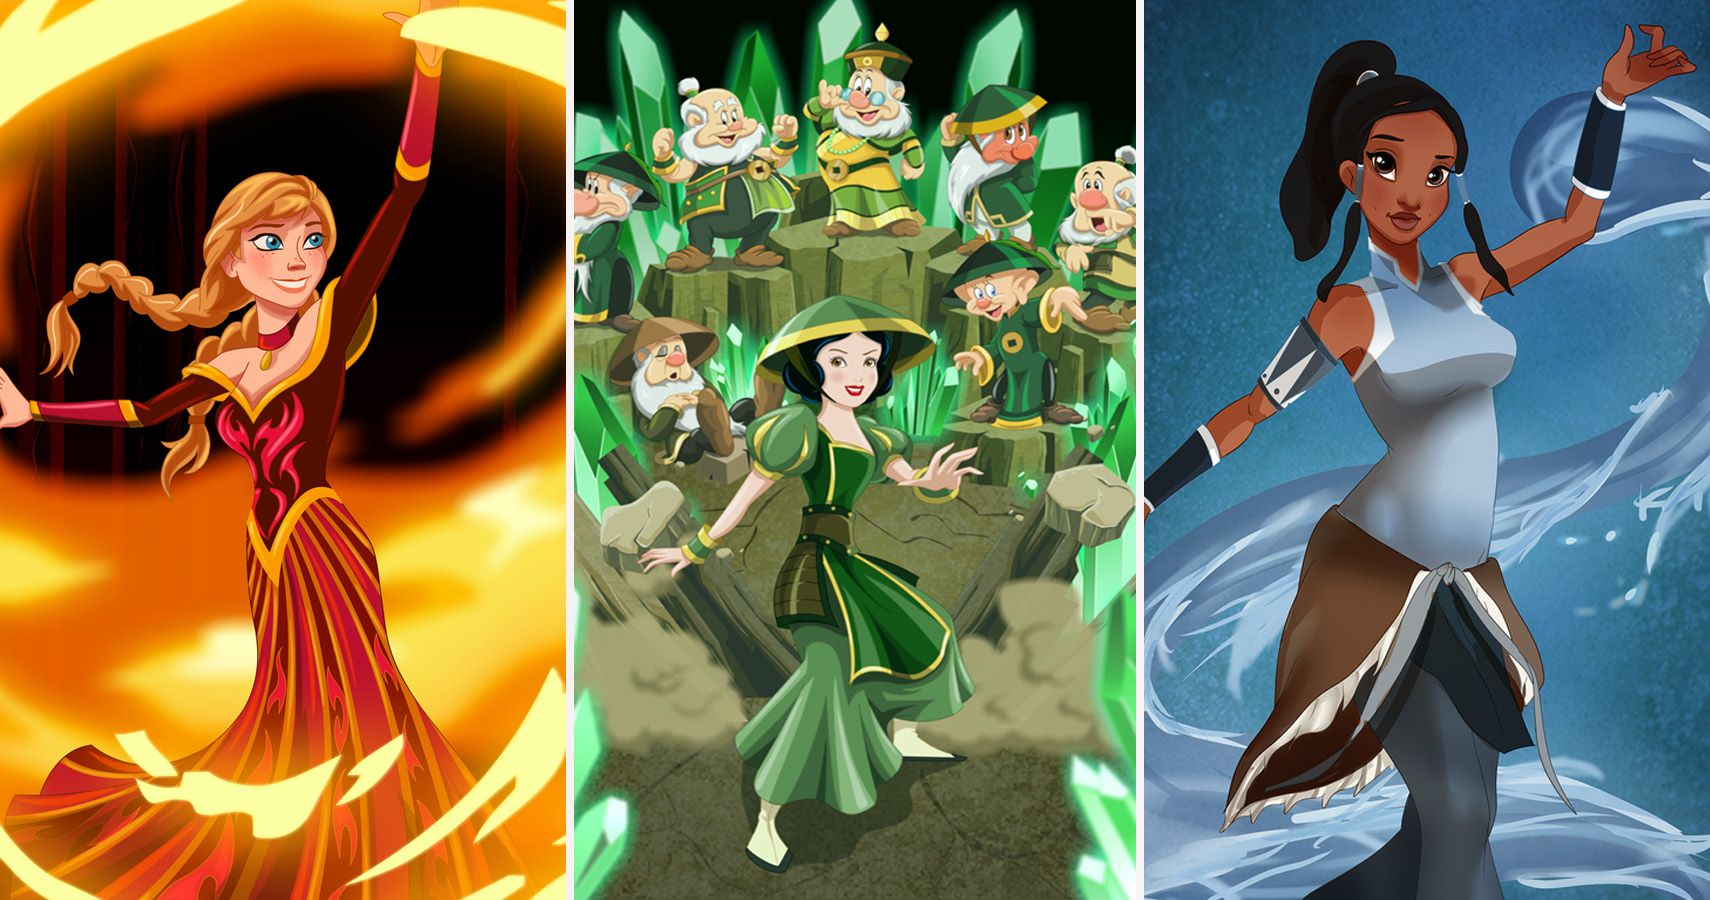 20 Disney Heroes Reimagined As Avatar The Last Airbender Characters